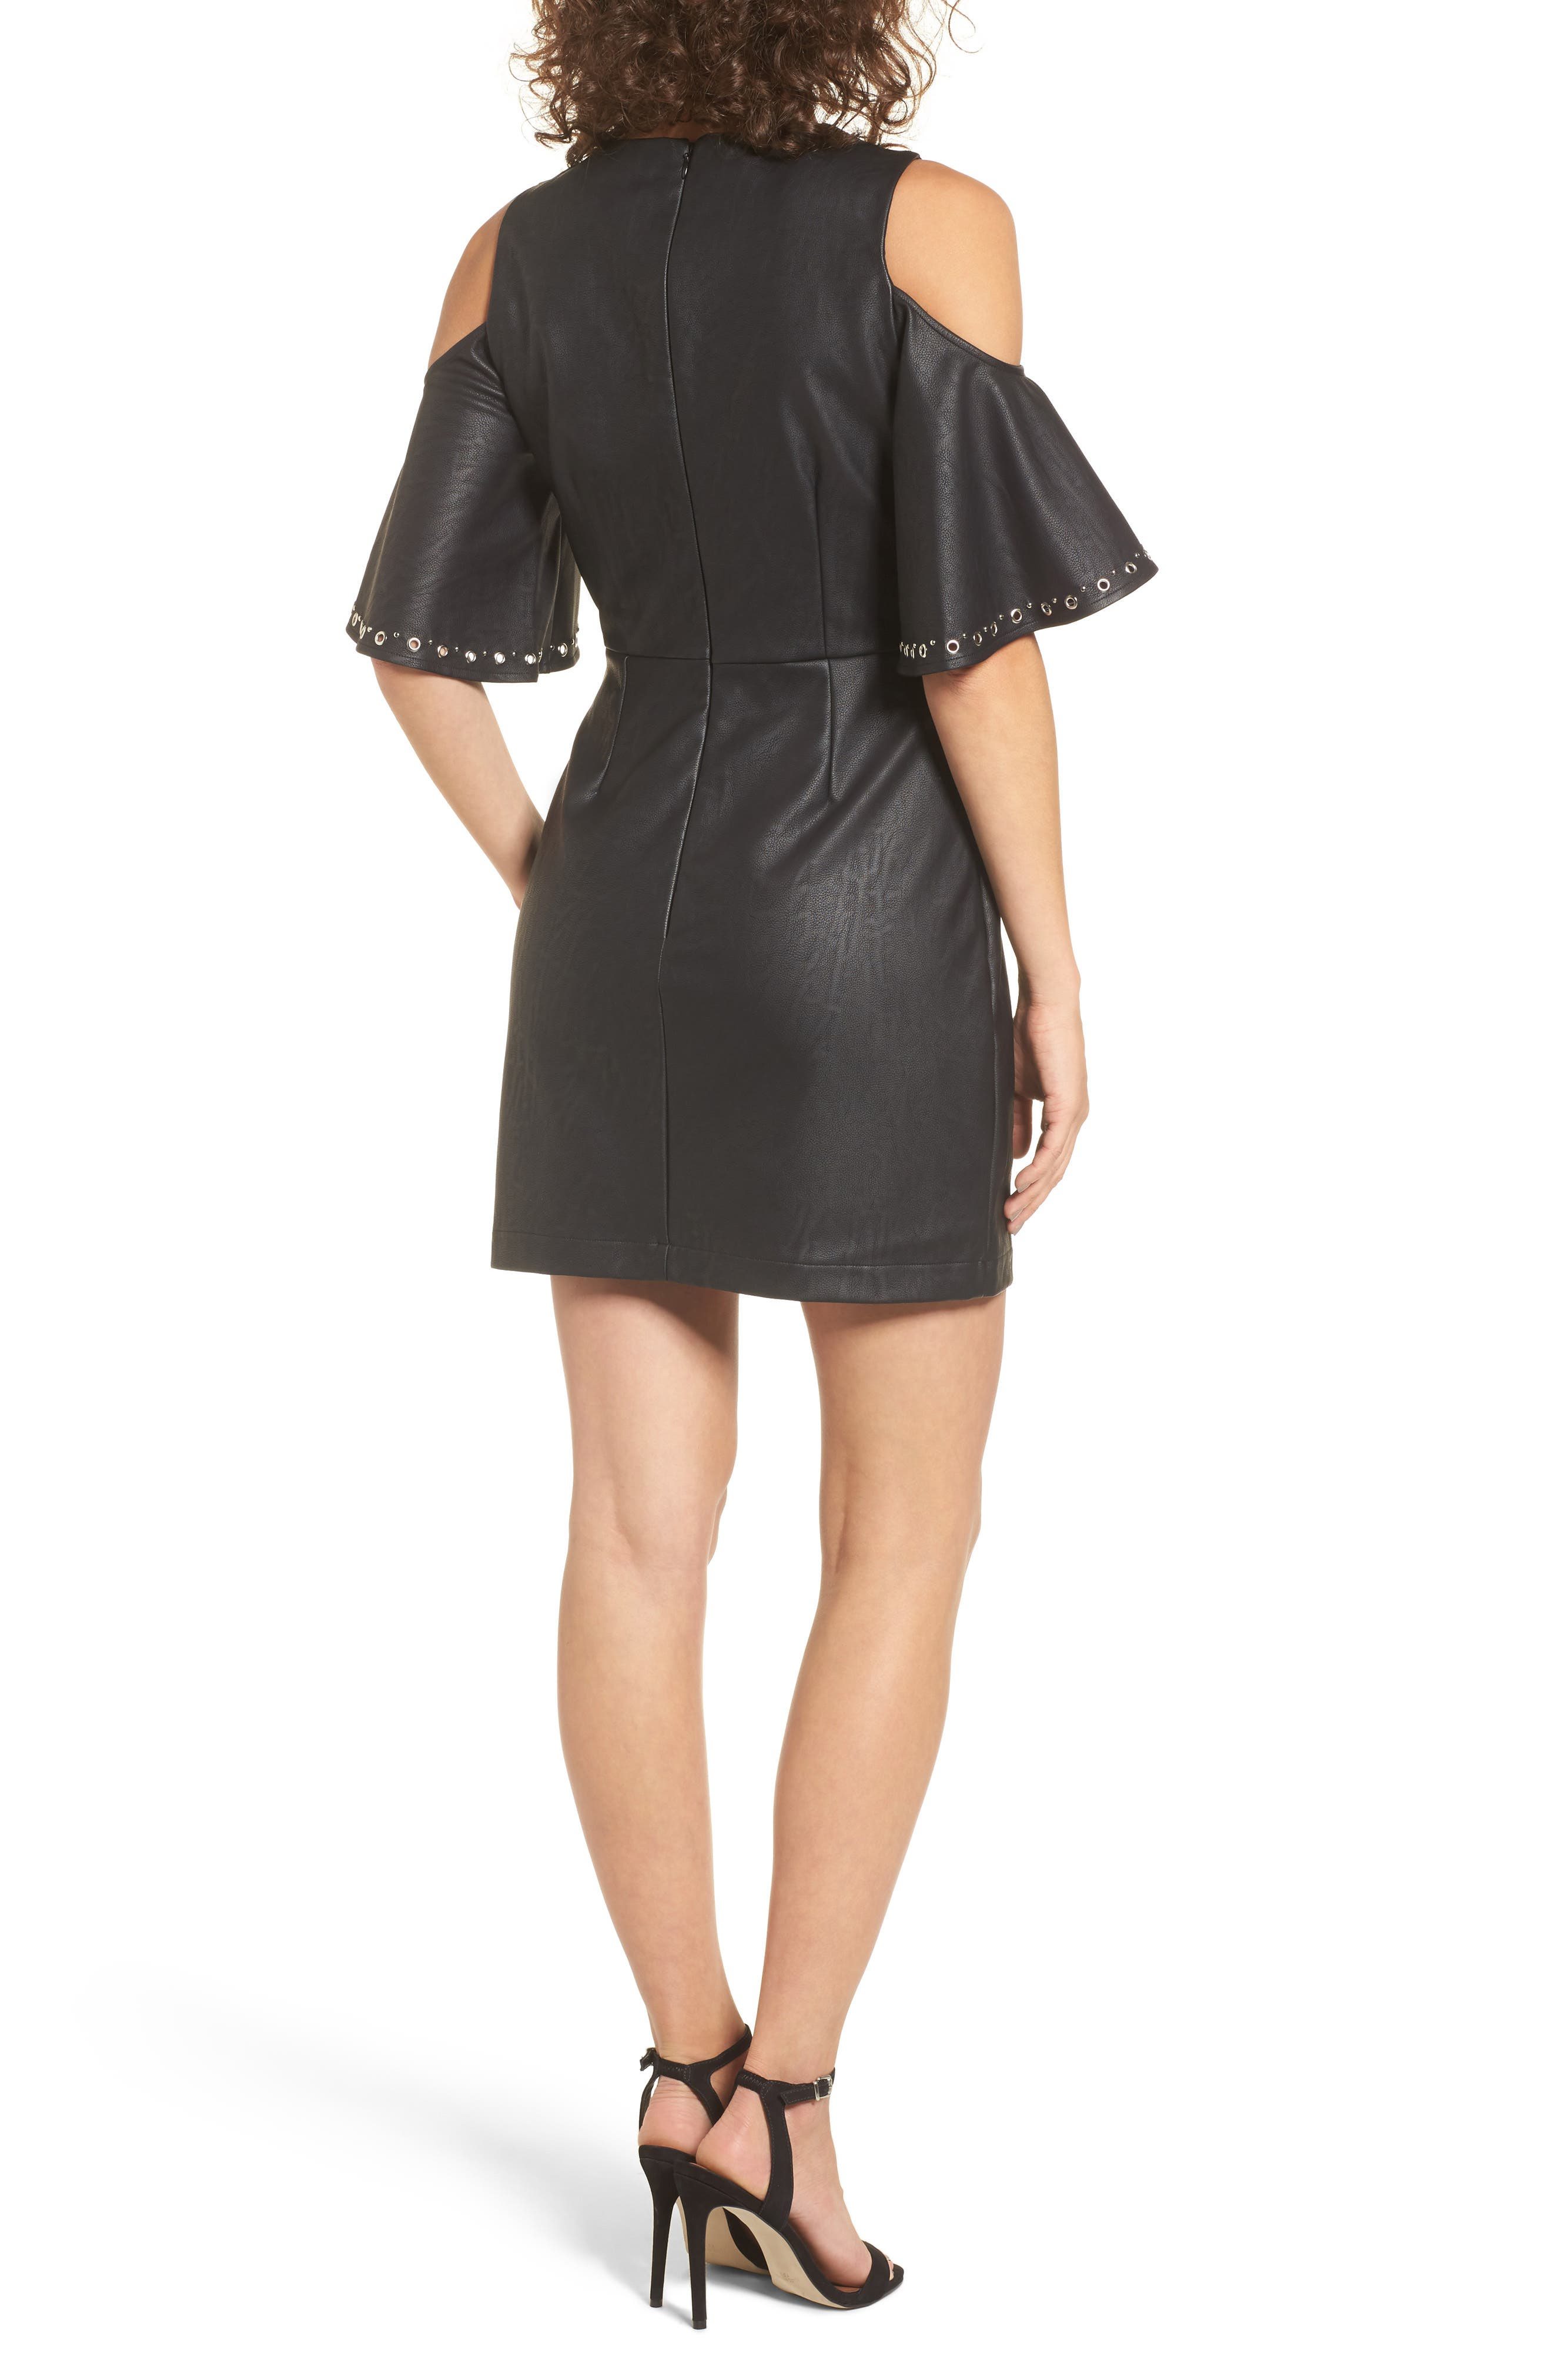 Dakota Cold Shoulder Minidress,                             Alternate thumbnail 3, color,                             Black